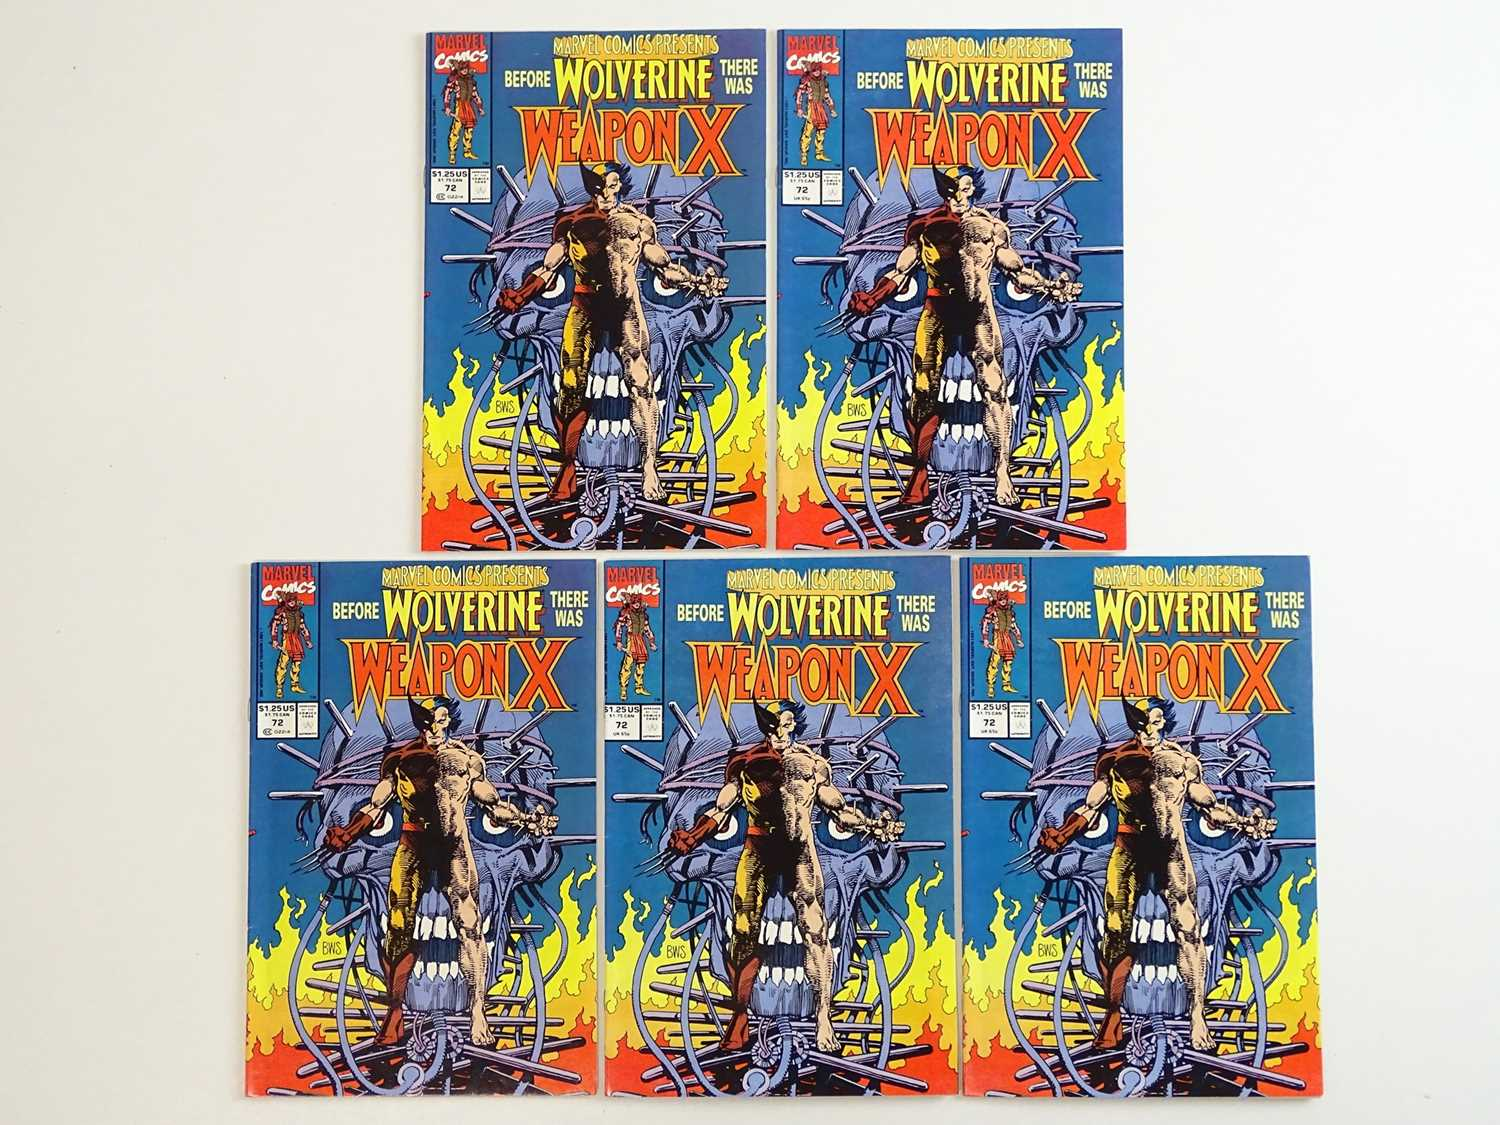 MARVEL COMICS PRESENTS #72 - (5 in Lot) - (1991 - MARVEL) - First appearance of Wolverine as